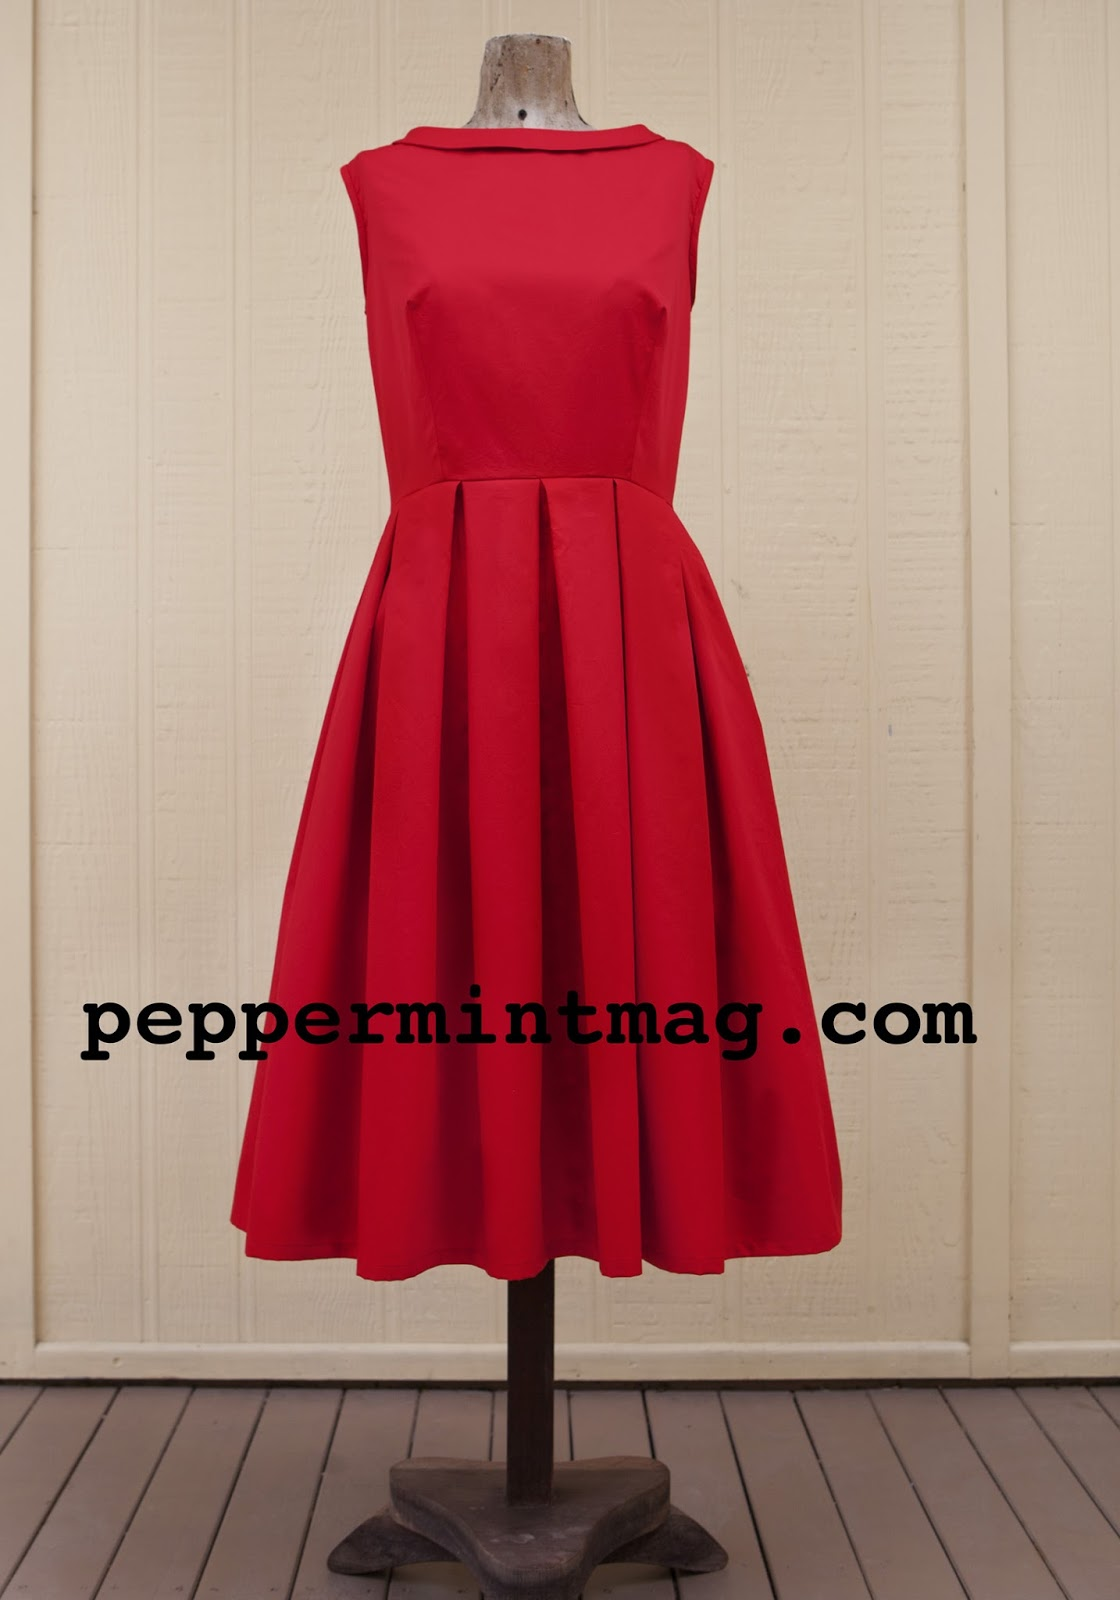 Free 1950's Sewing Pattern - Pleated Prom Dress